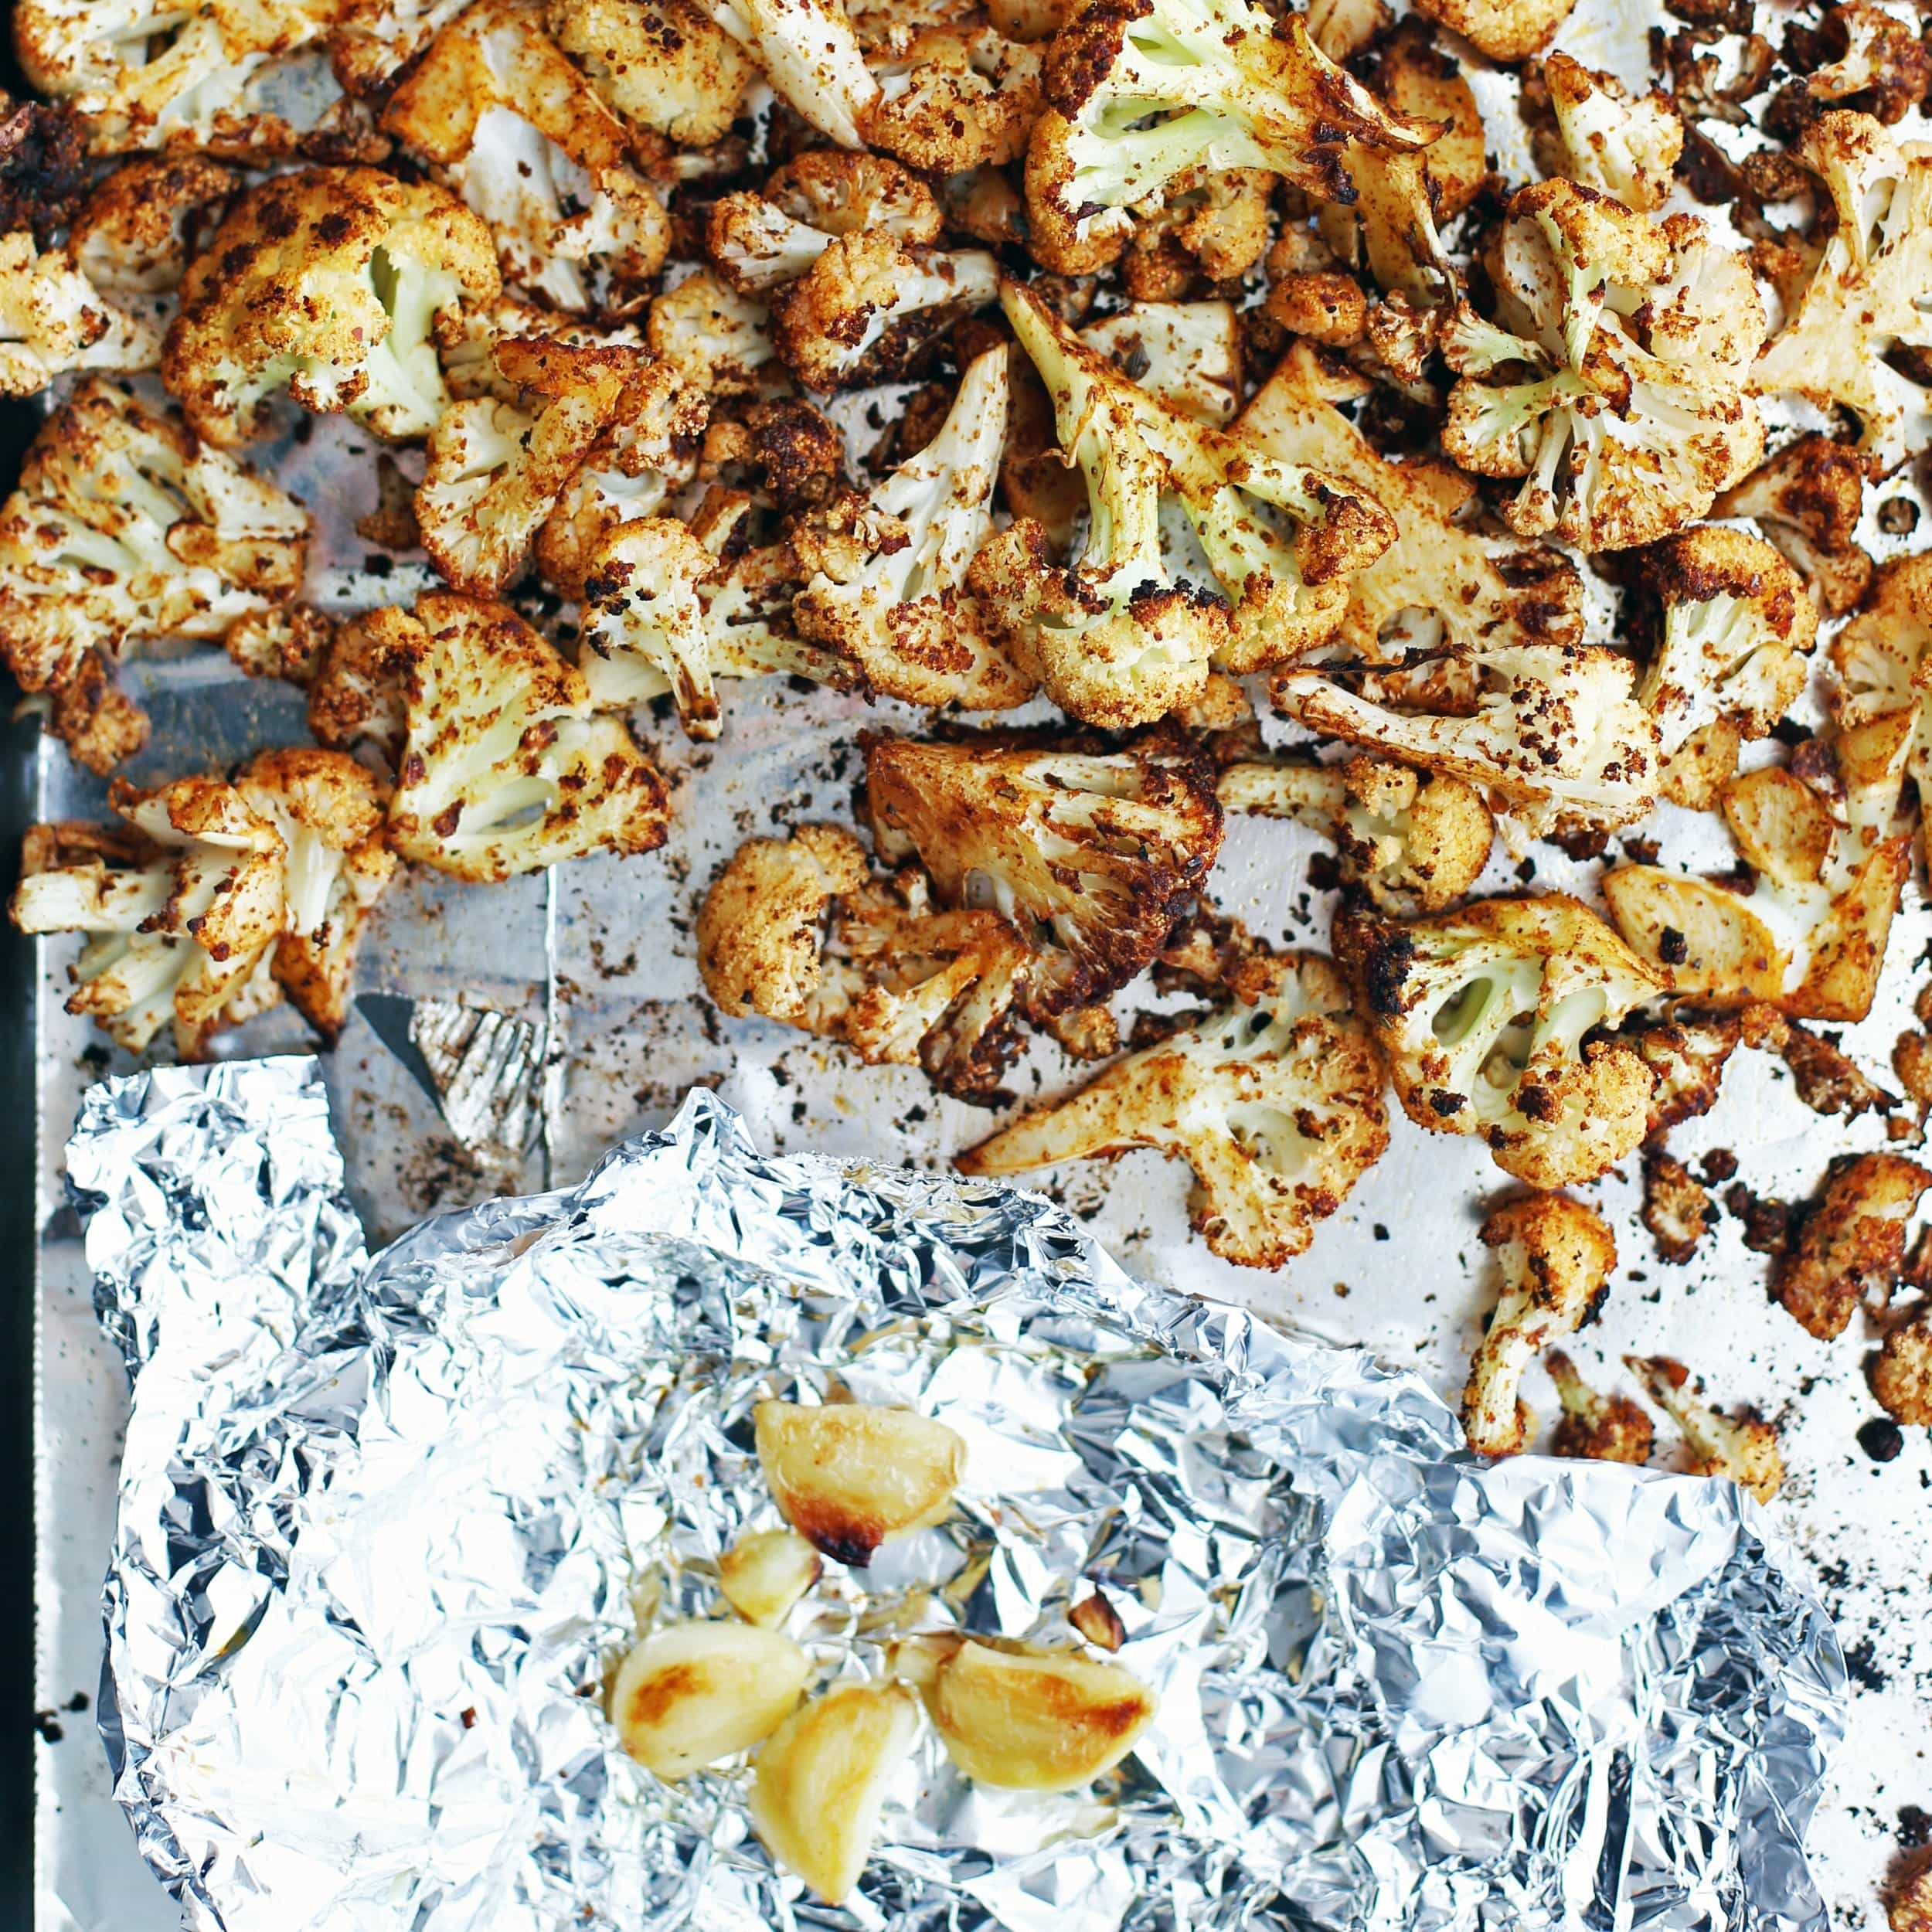 Roasted spiced cauliflower florets and roasted garlic cloves on a baking sheet.